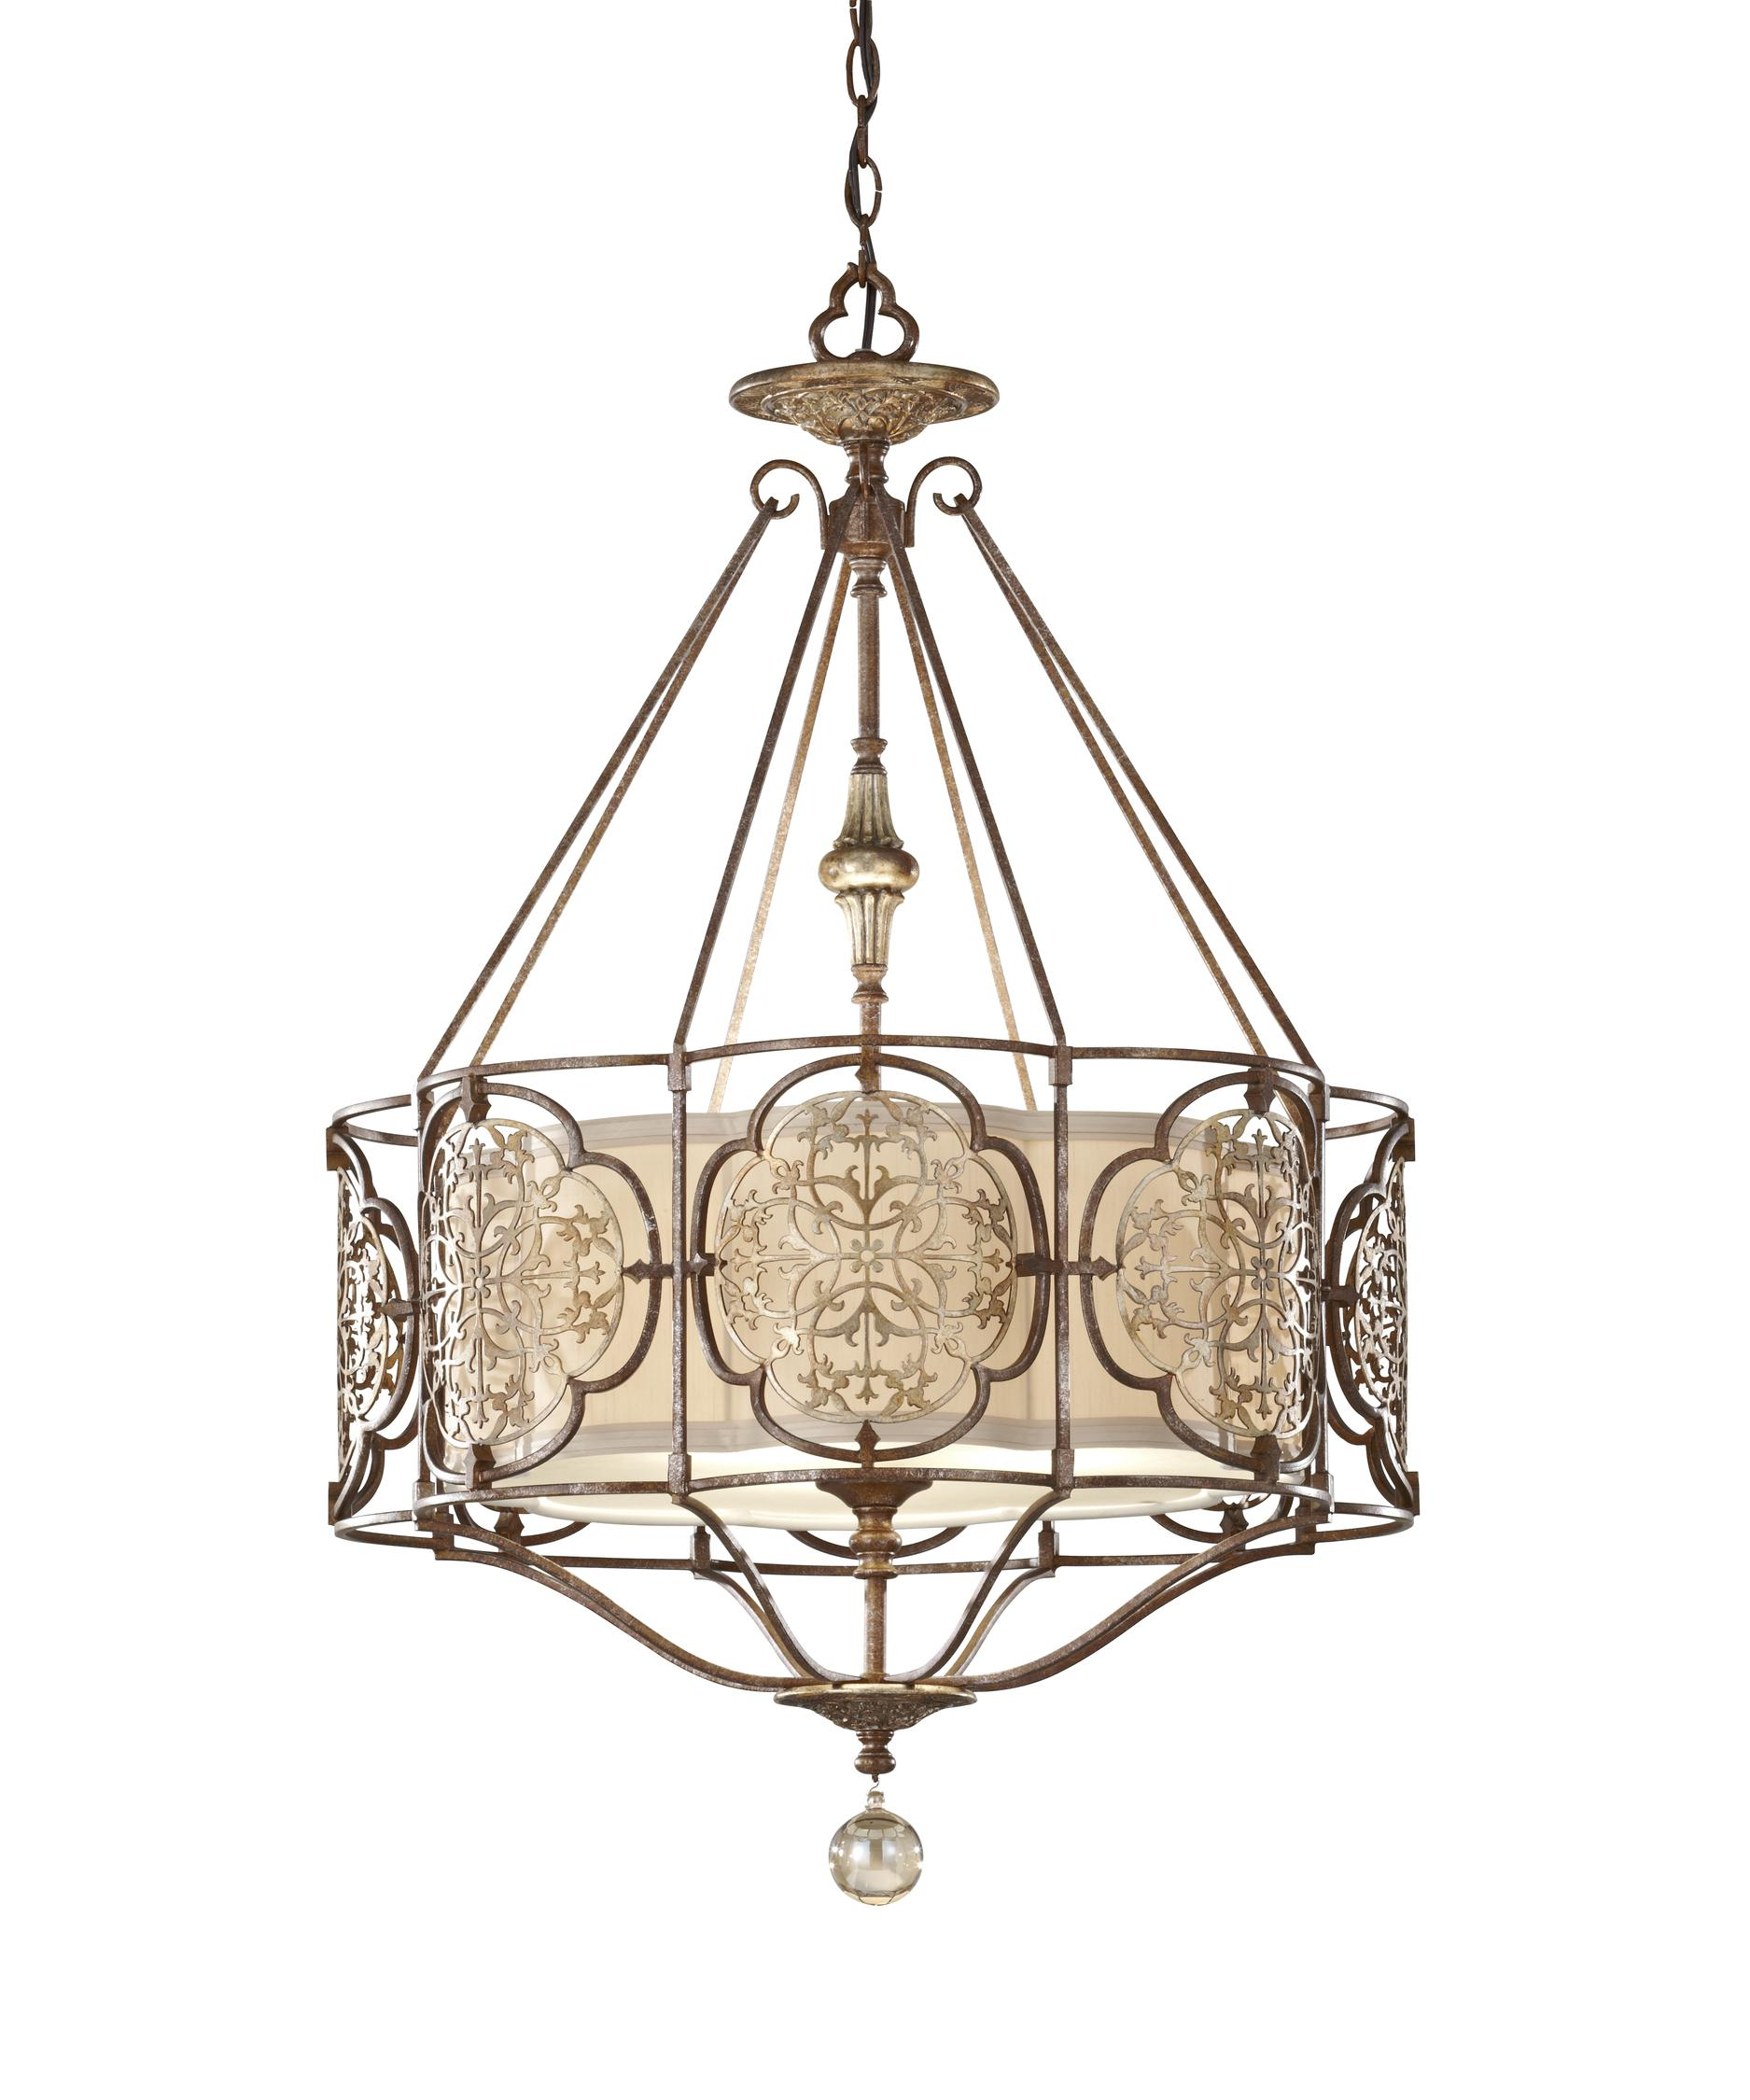 shown in british bronze and oxidized bronze finish and beige hardback shade - Feiss Lighting